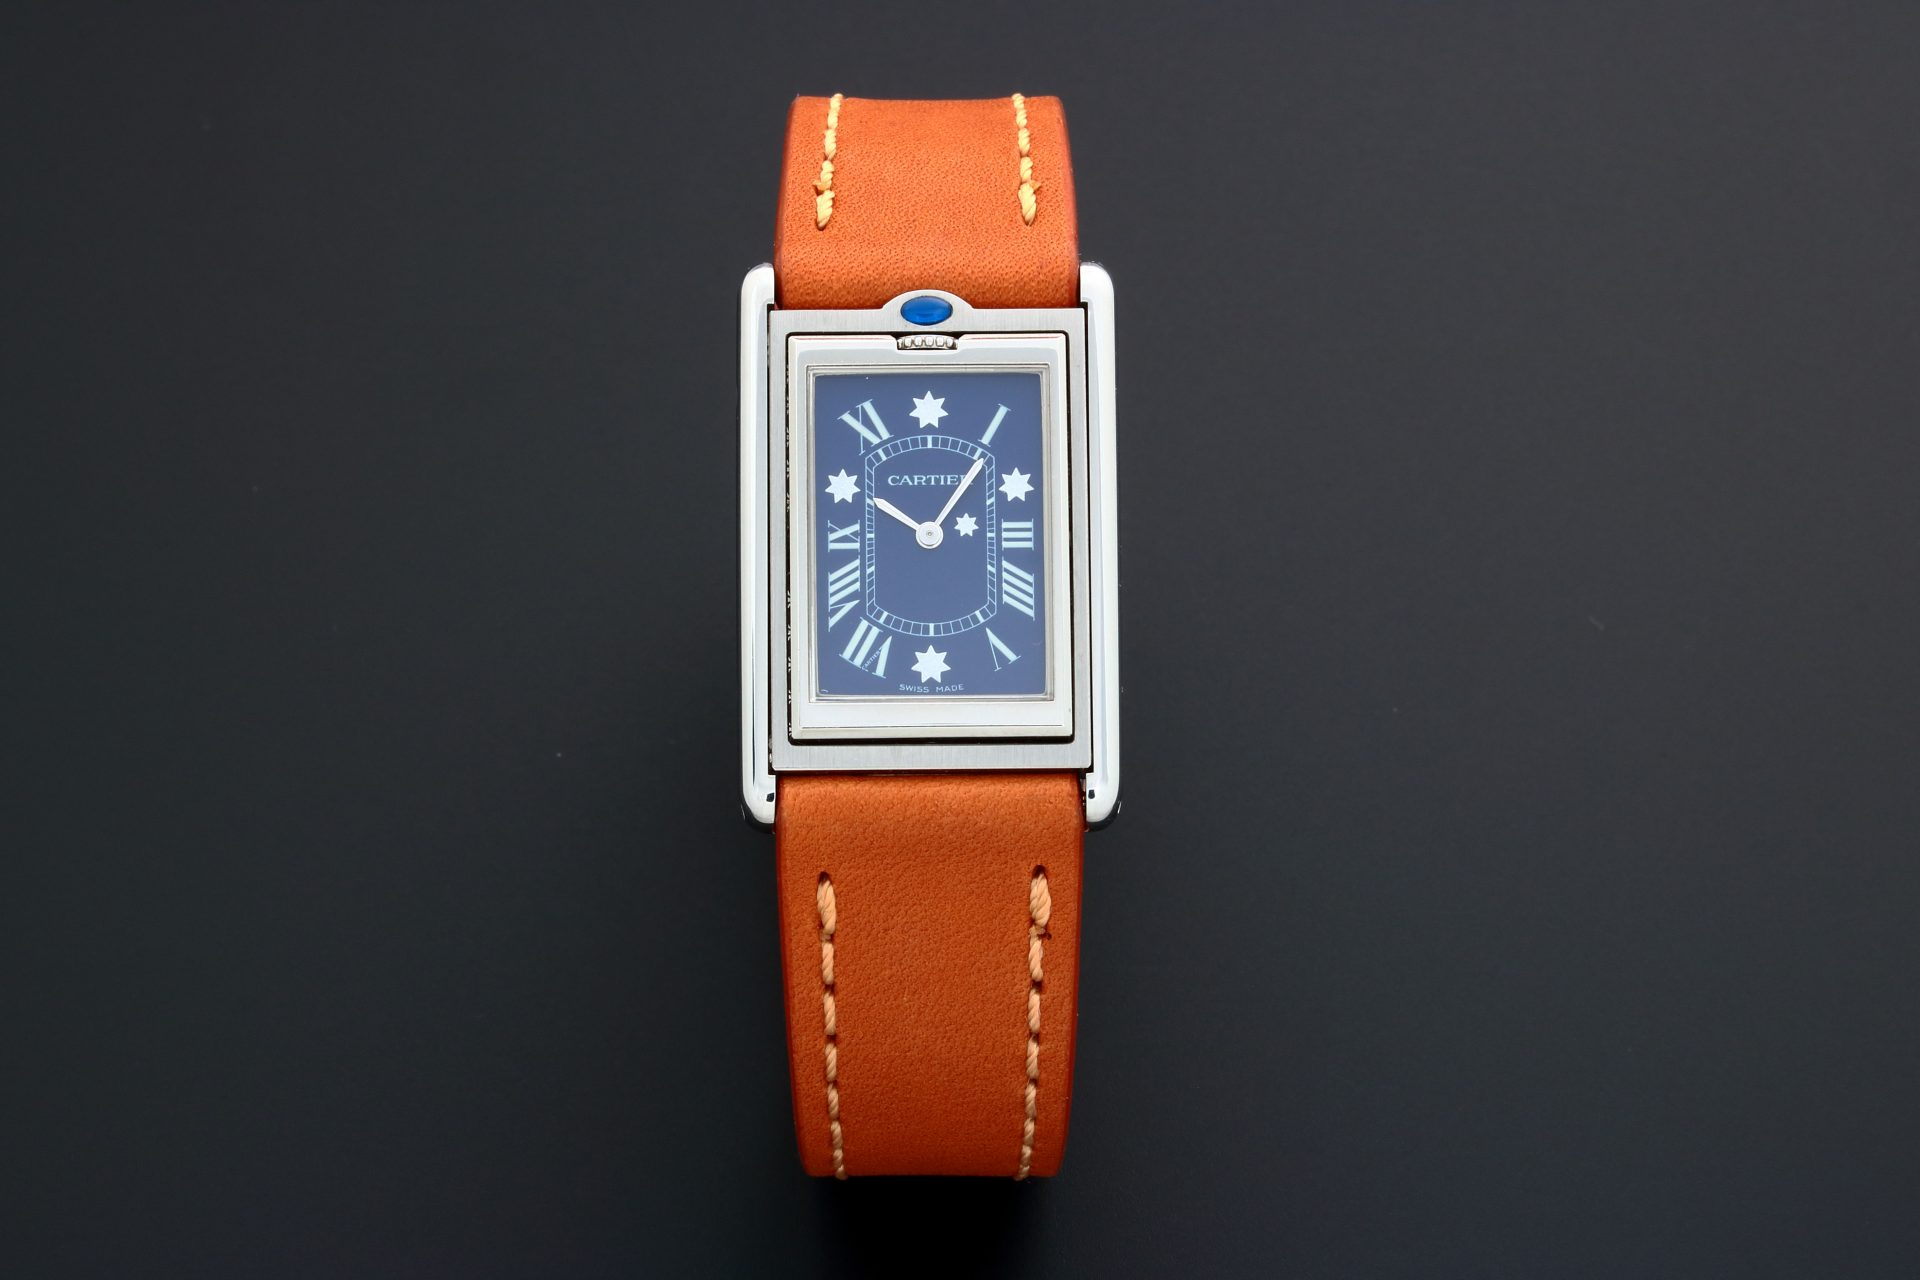 Rare Limited Edition Cartier Tank Basculante 2390 For The Australian Federation